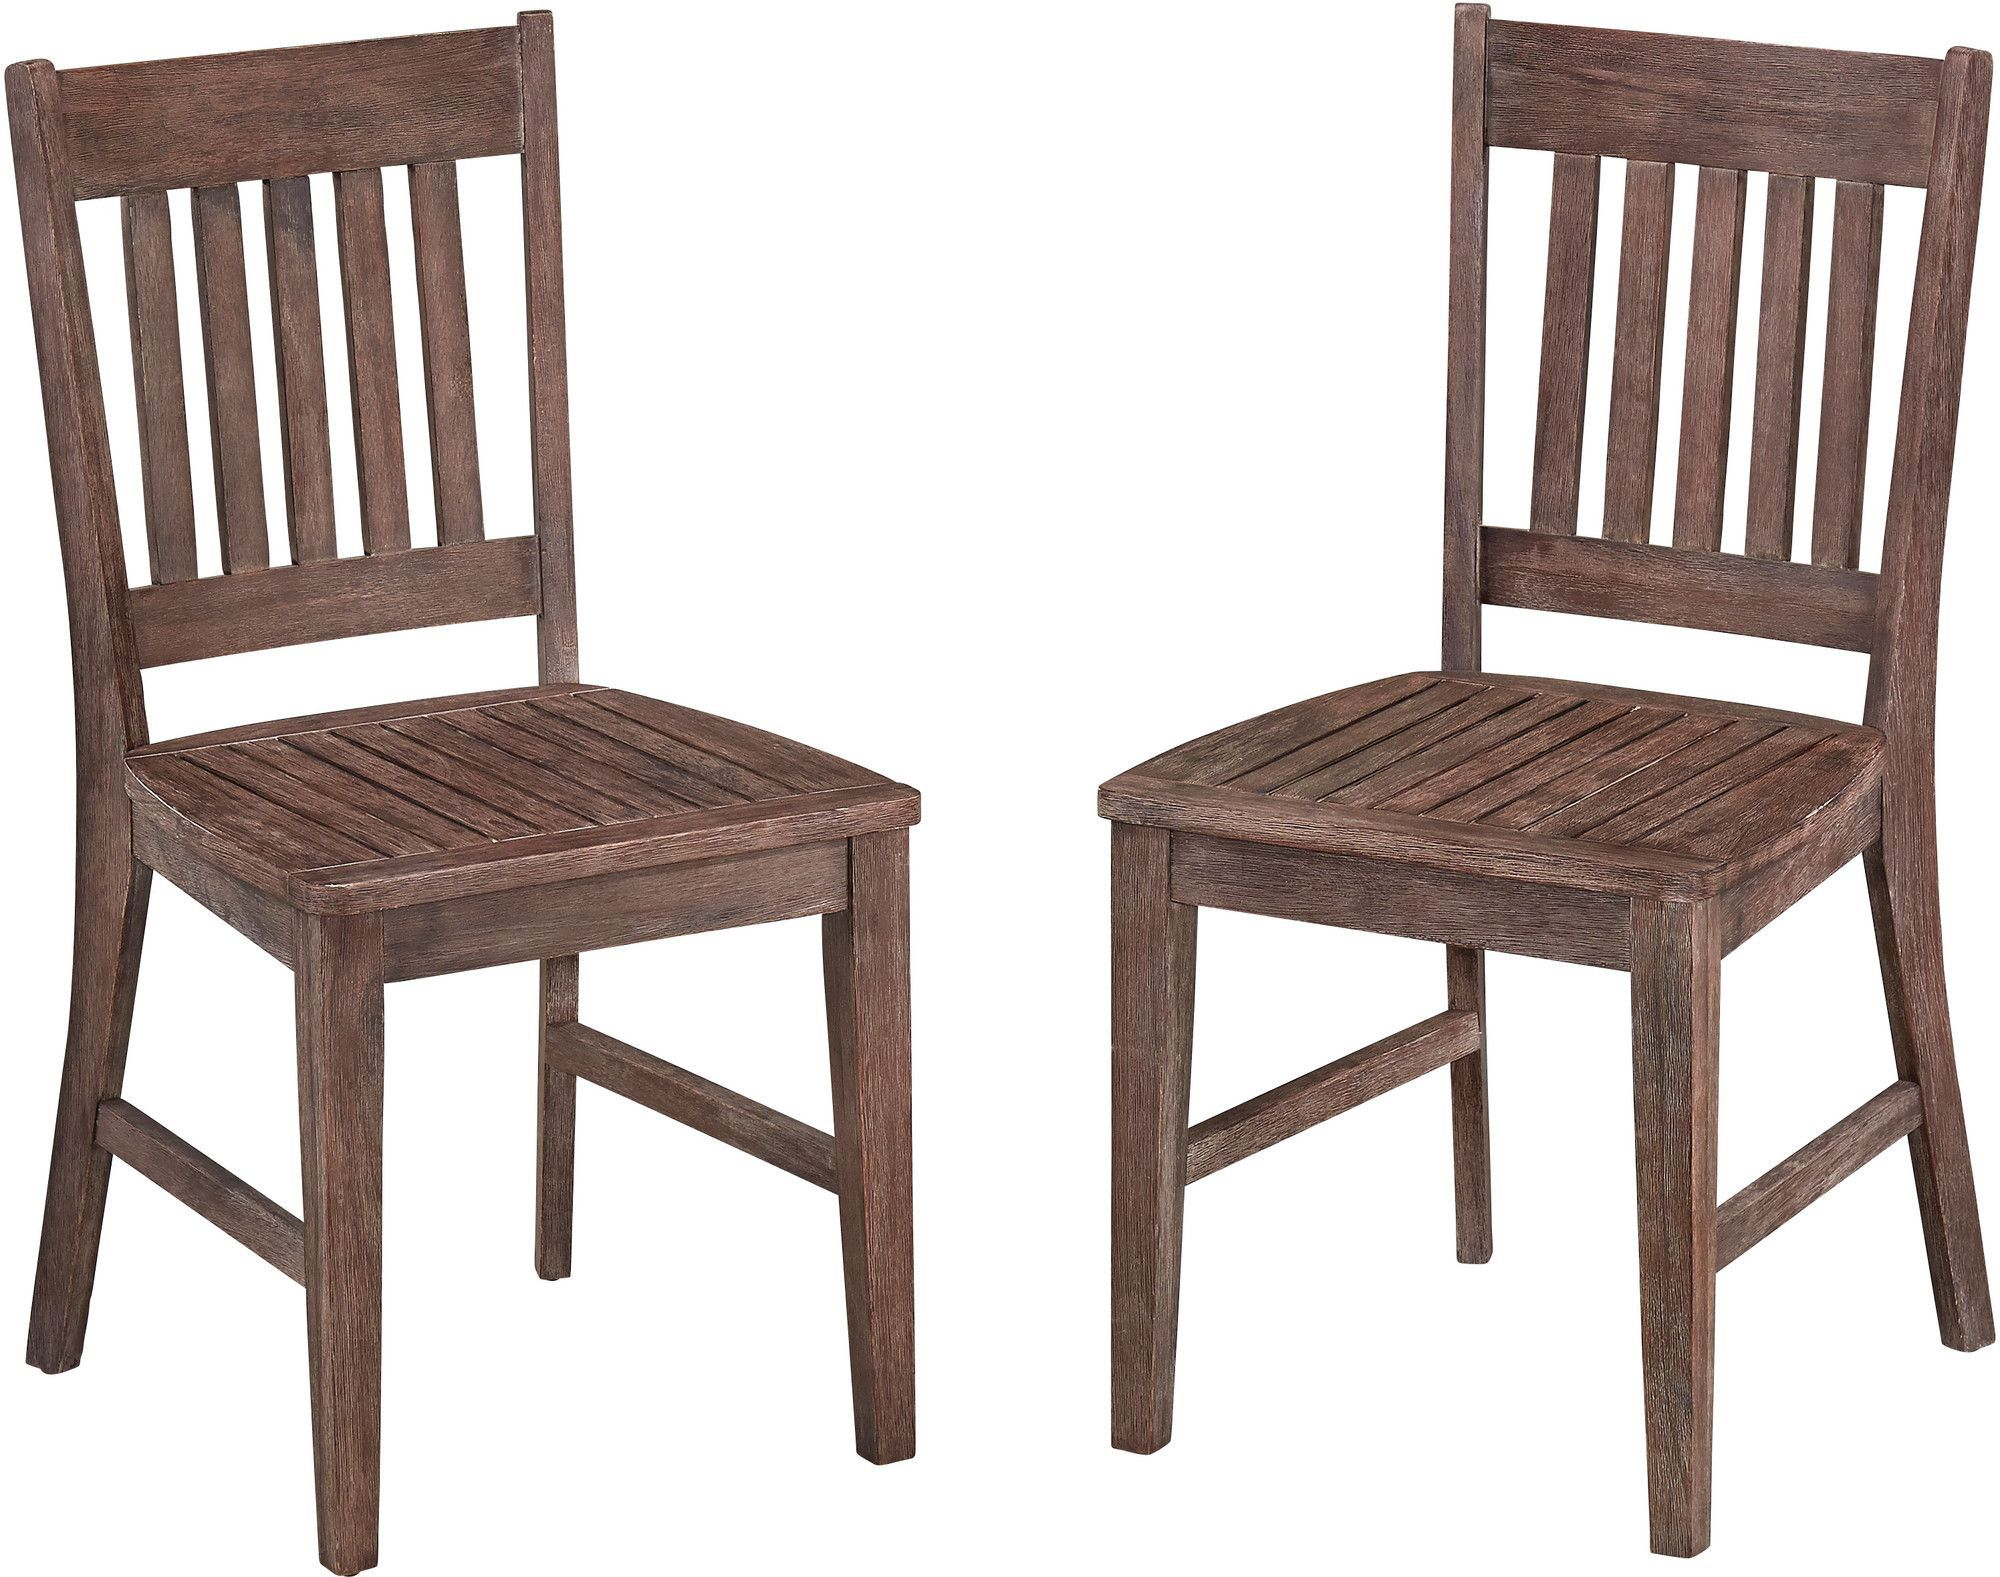 Morocco Side Chair Patio Dining Chairs Wood Patio Solid Wood Dining Chairs